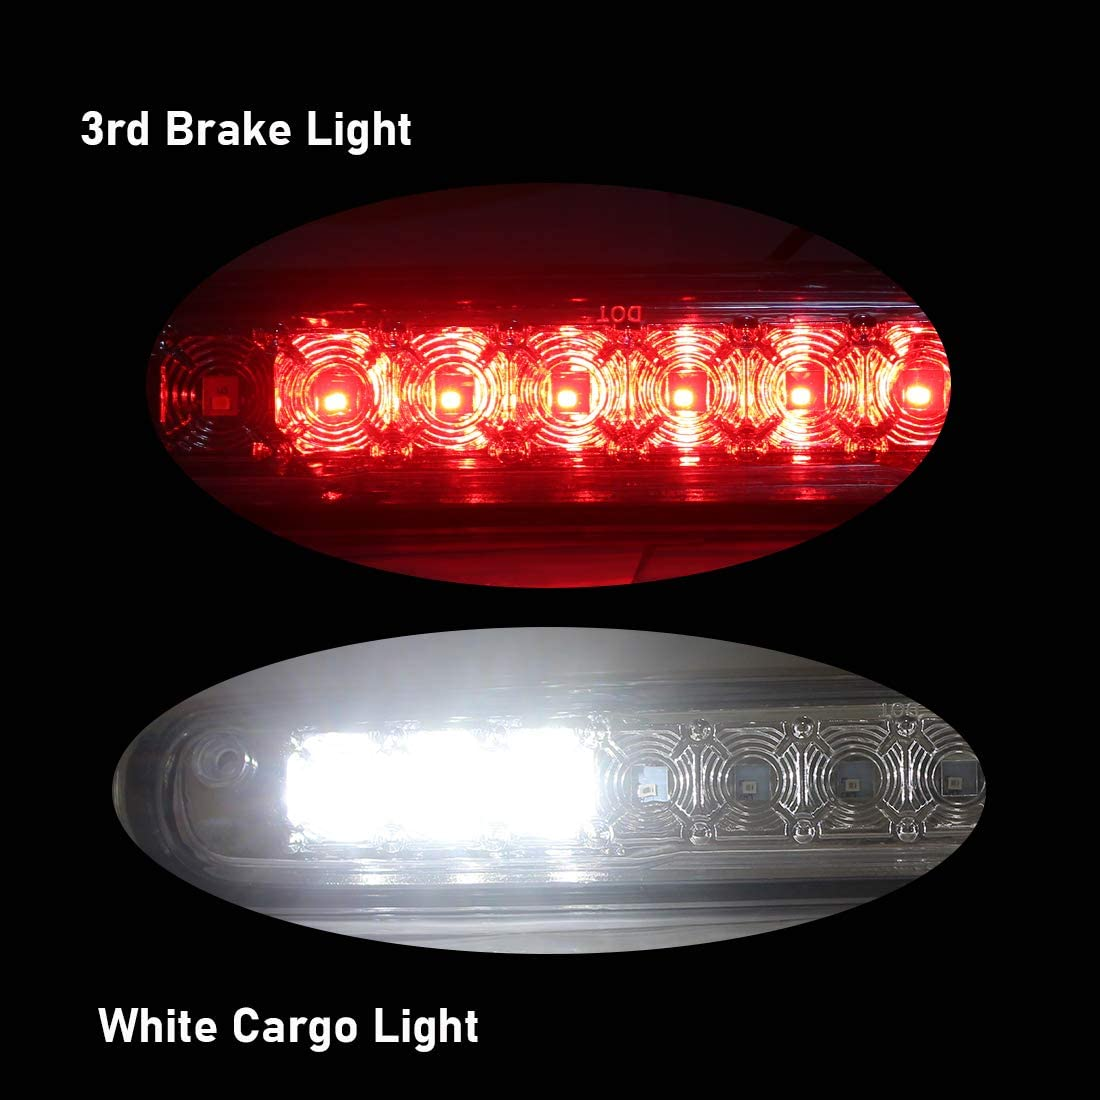 Red Lens Tail High Mount Stop Light Assembly NPAUTO LED Third 3rd Brake Light Cargo Lamp Replacement for 2007-2014 Chevrolet Silverado//GMC Sierra 1500 2500HD 3500HD